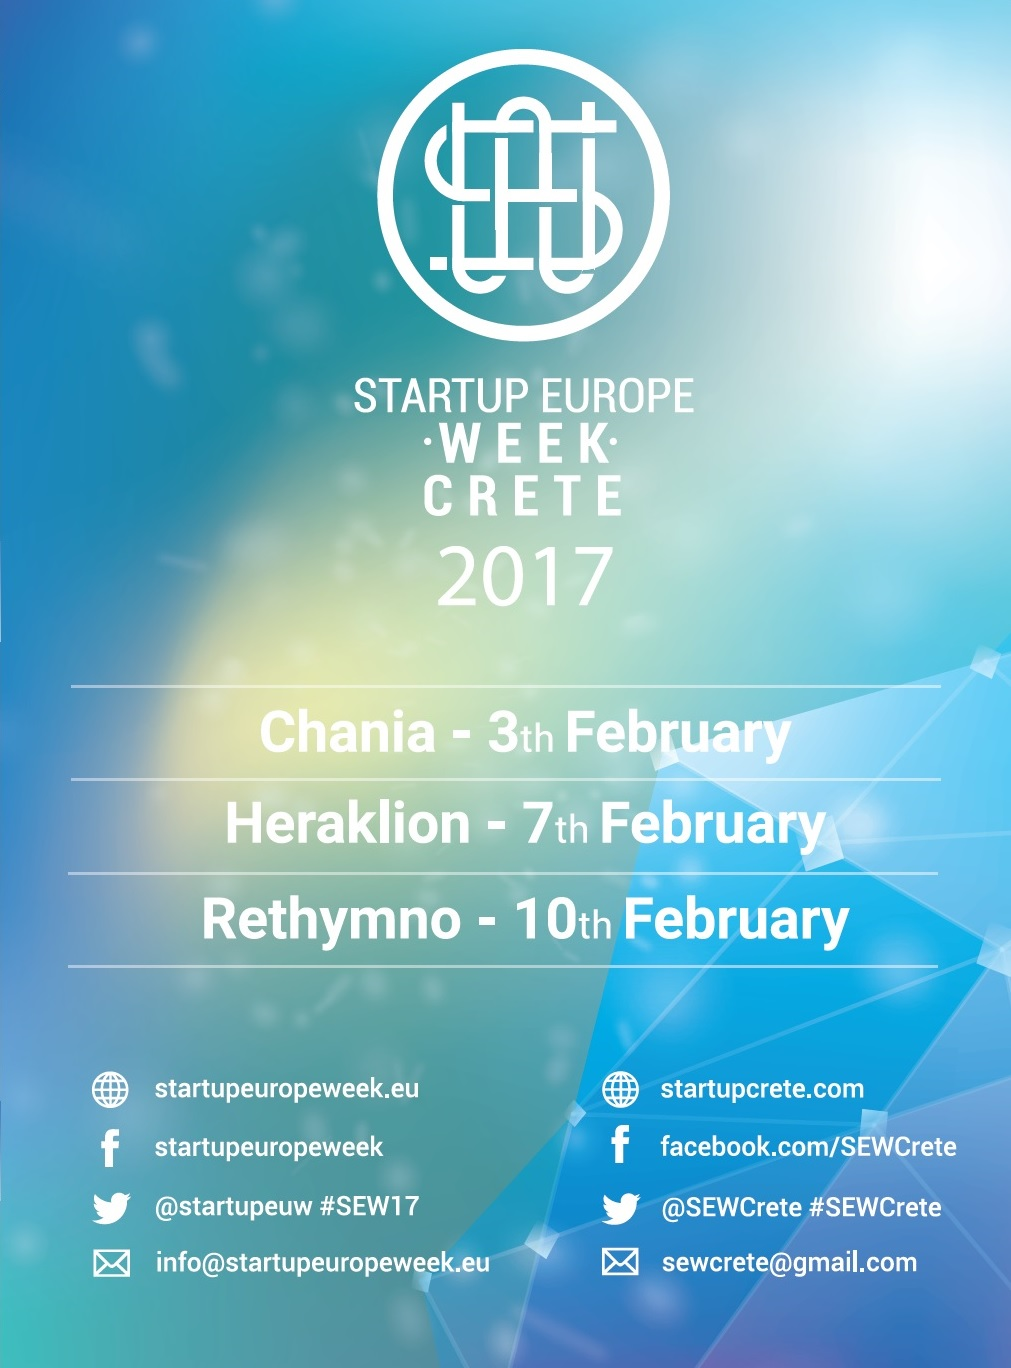 sew2017-crete-startups Europe Week